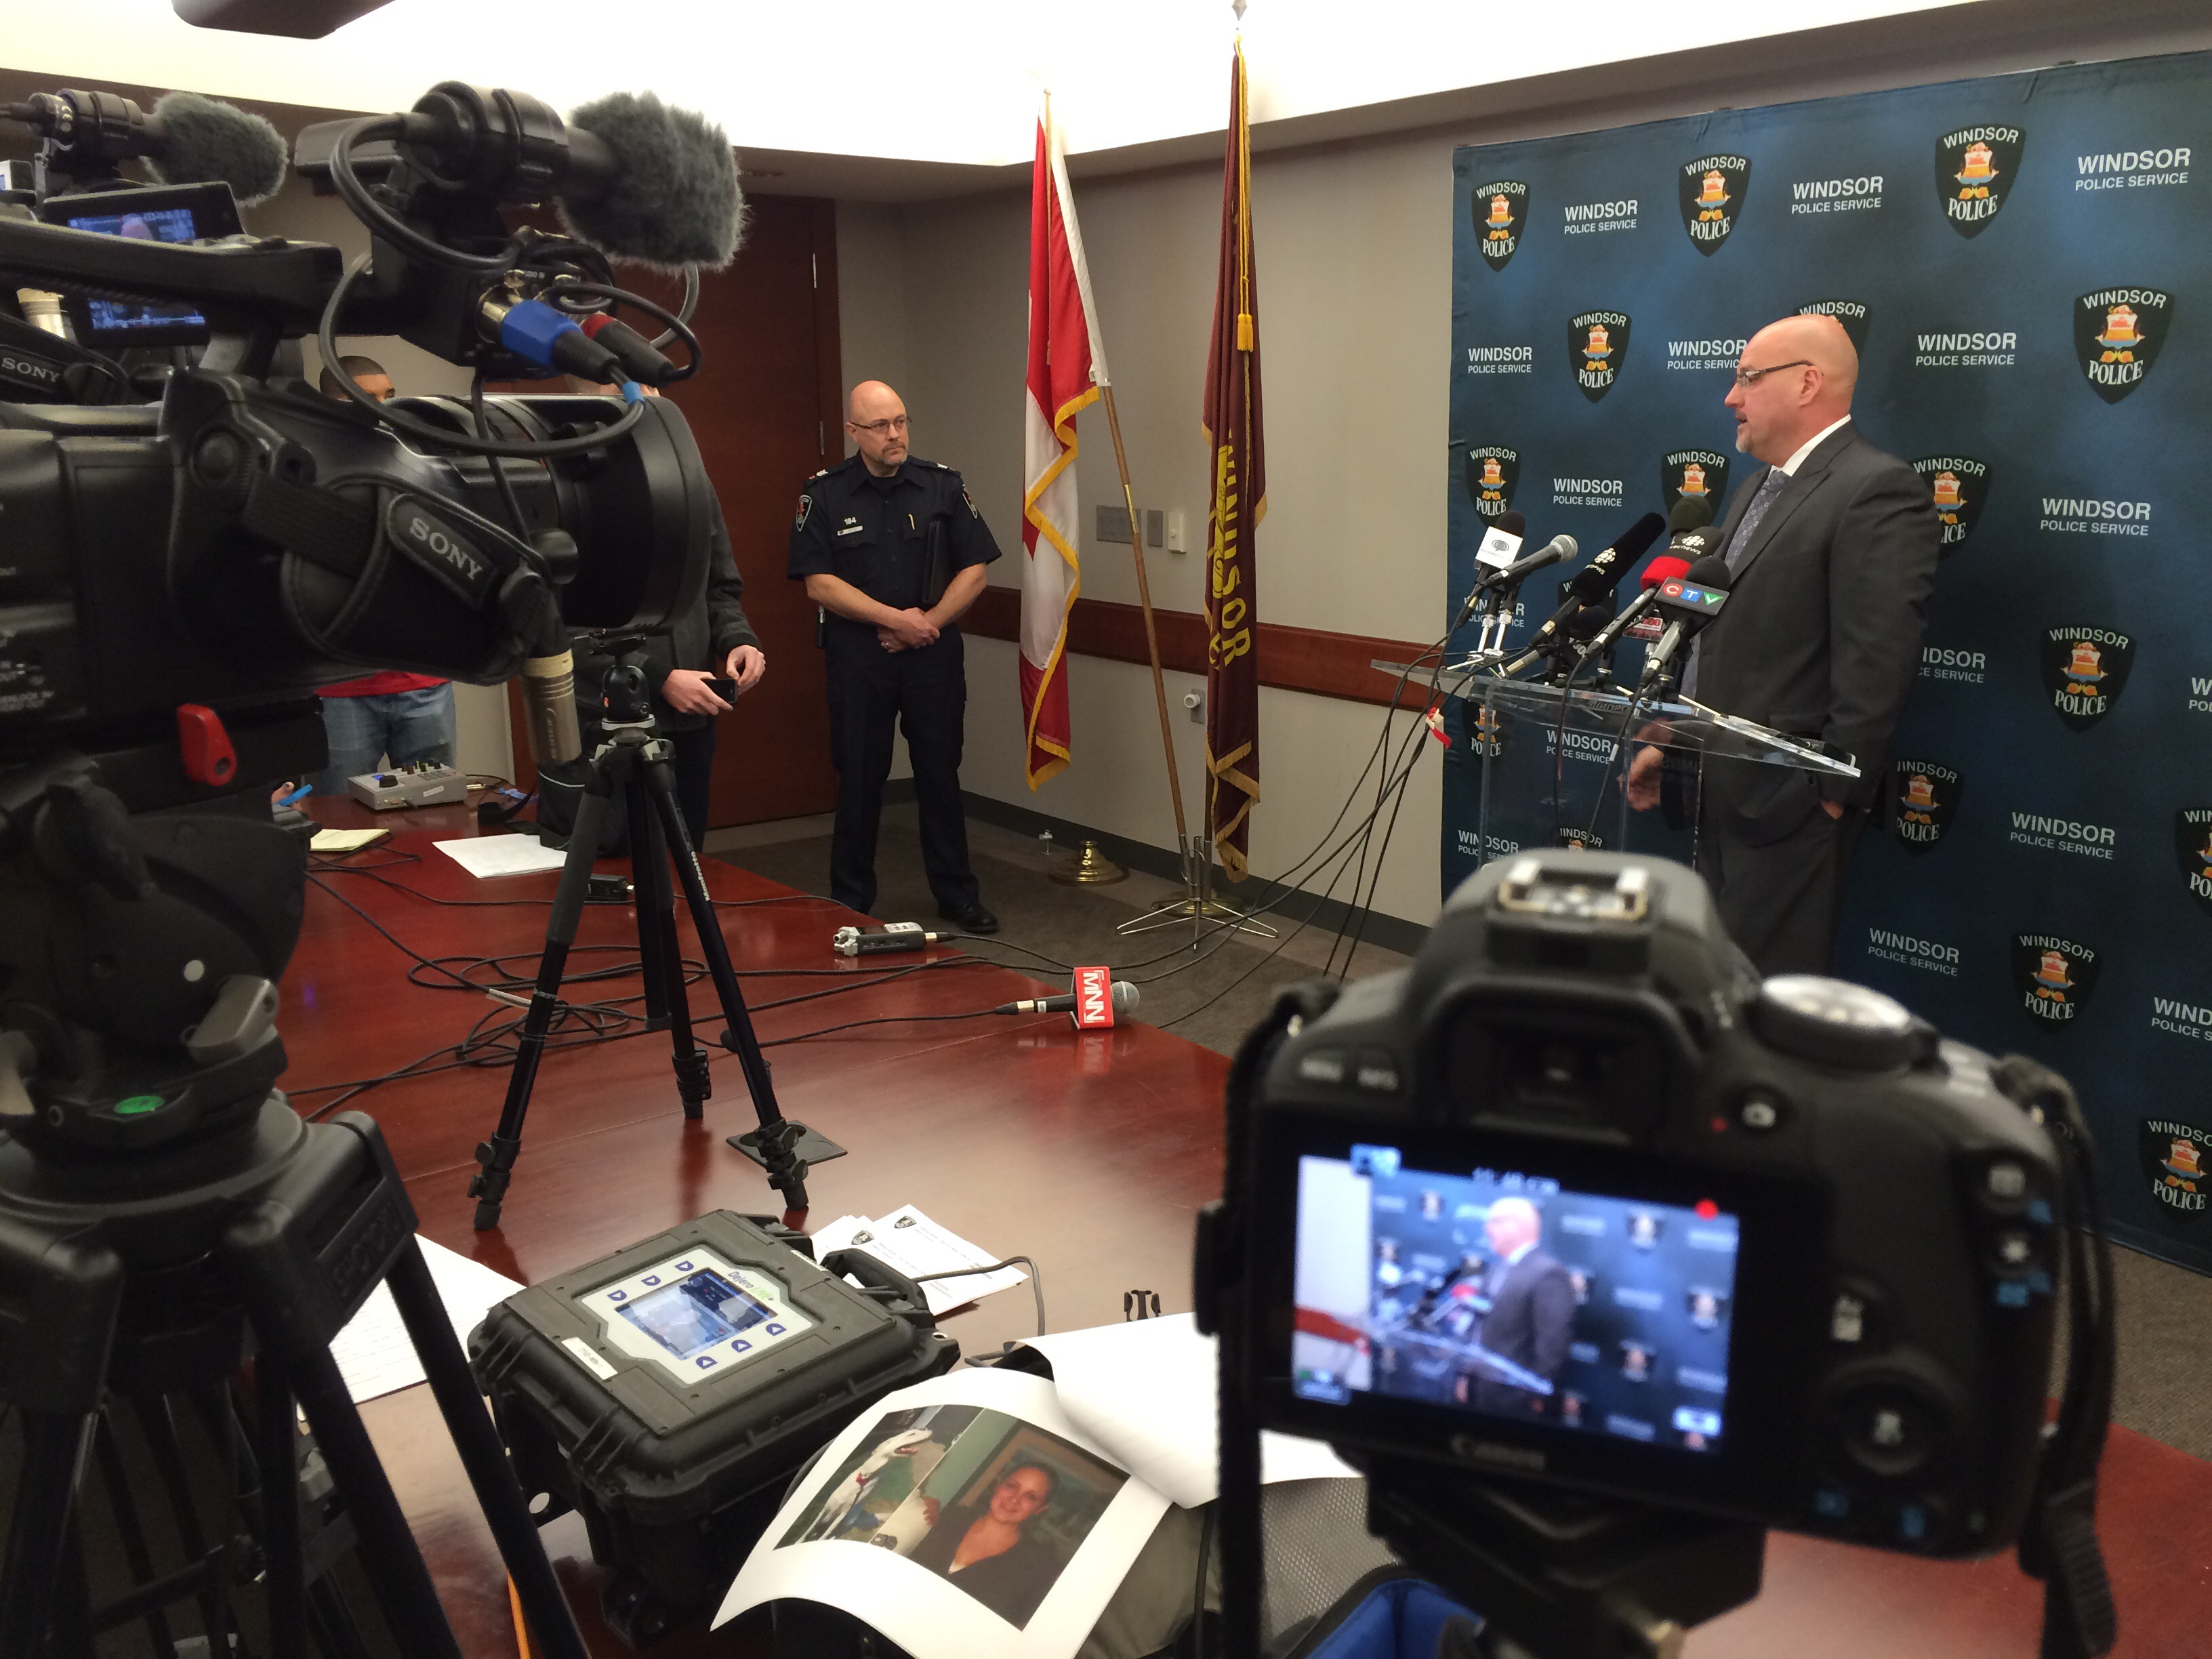 Windsor police hold a news conference on February 5, 2015 about the arrest made in the murder of Cassandra Kaake. (Photo by Jason Viau)